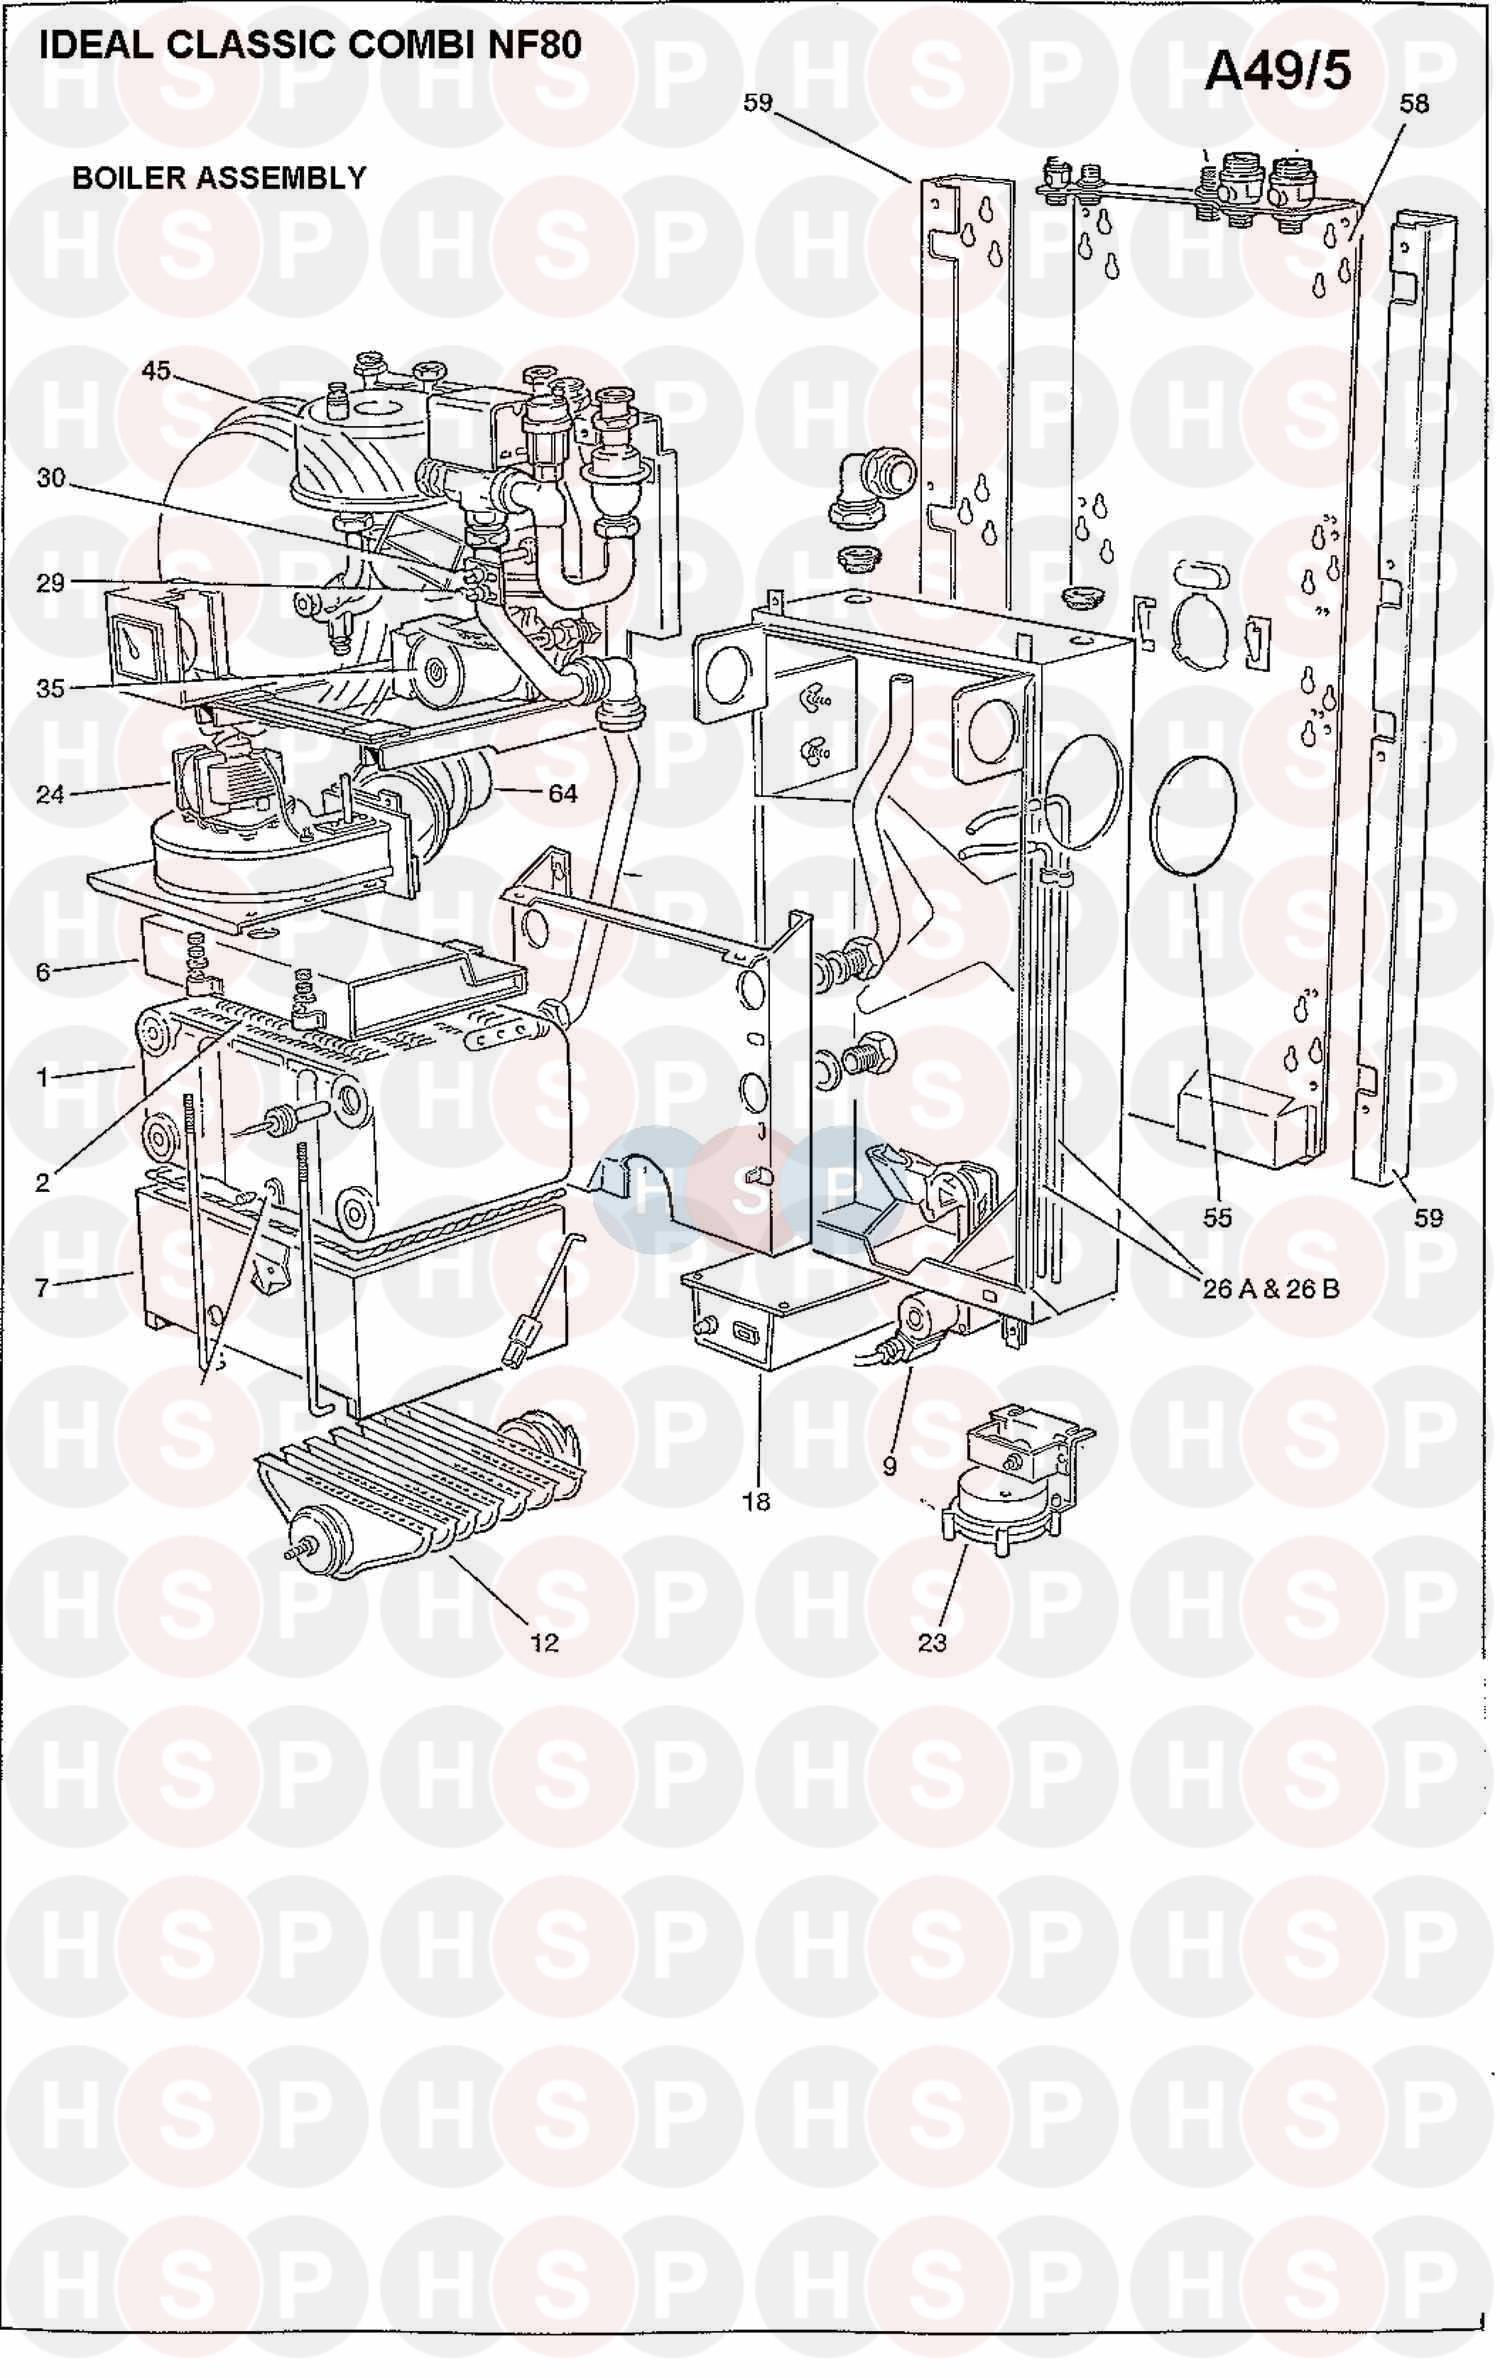 Ideal CLASSIC COMBI NF80 (BOILER ASSEMBLY 1) Diagram